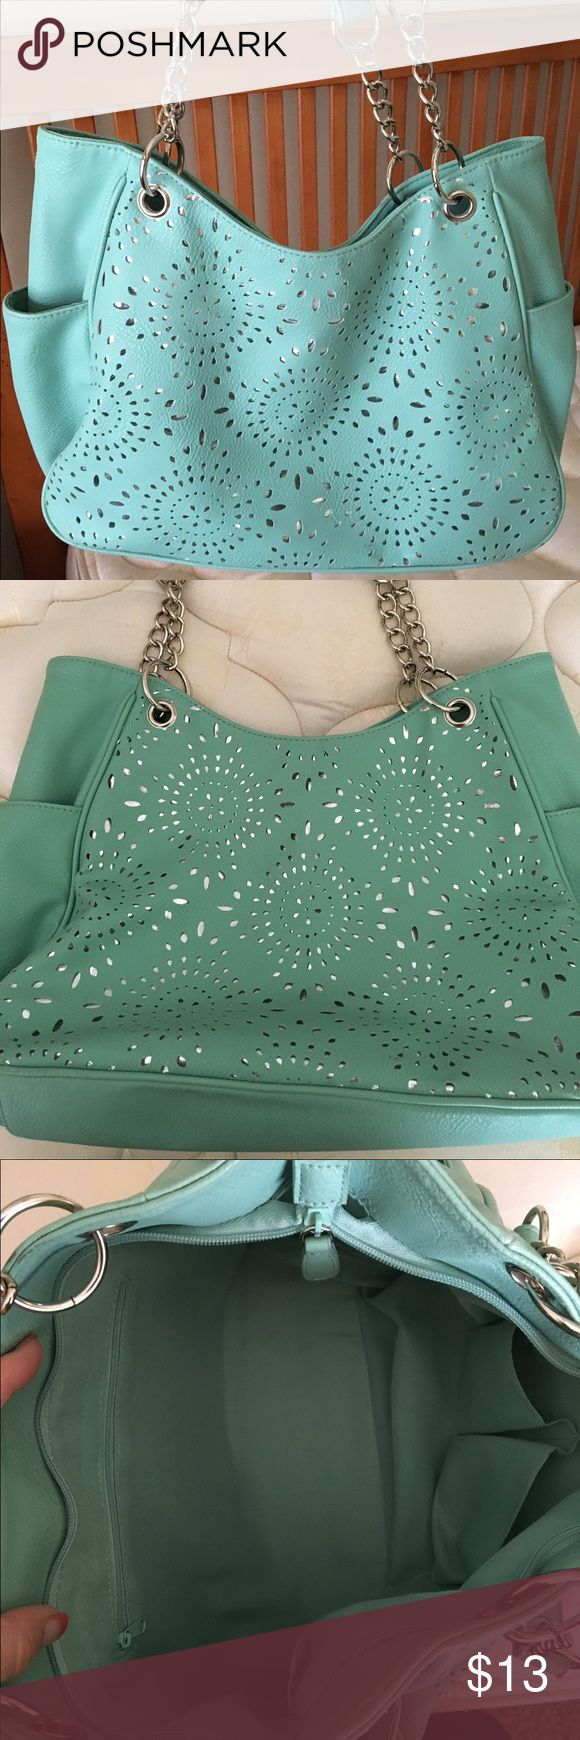 Super cute Seafoam Green Purse Super cute Seafoam Green Purse with Silver cut out accents.  Bought from Payless Shoes. Good condition. Size demensions are 13 x 11.  Very fun summer color. Payless Shoe Source Bags Shoulder Bags